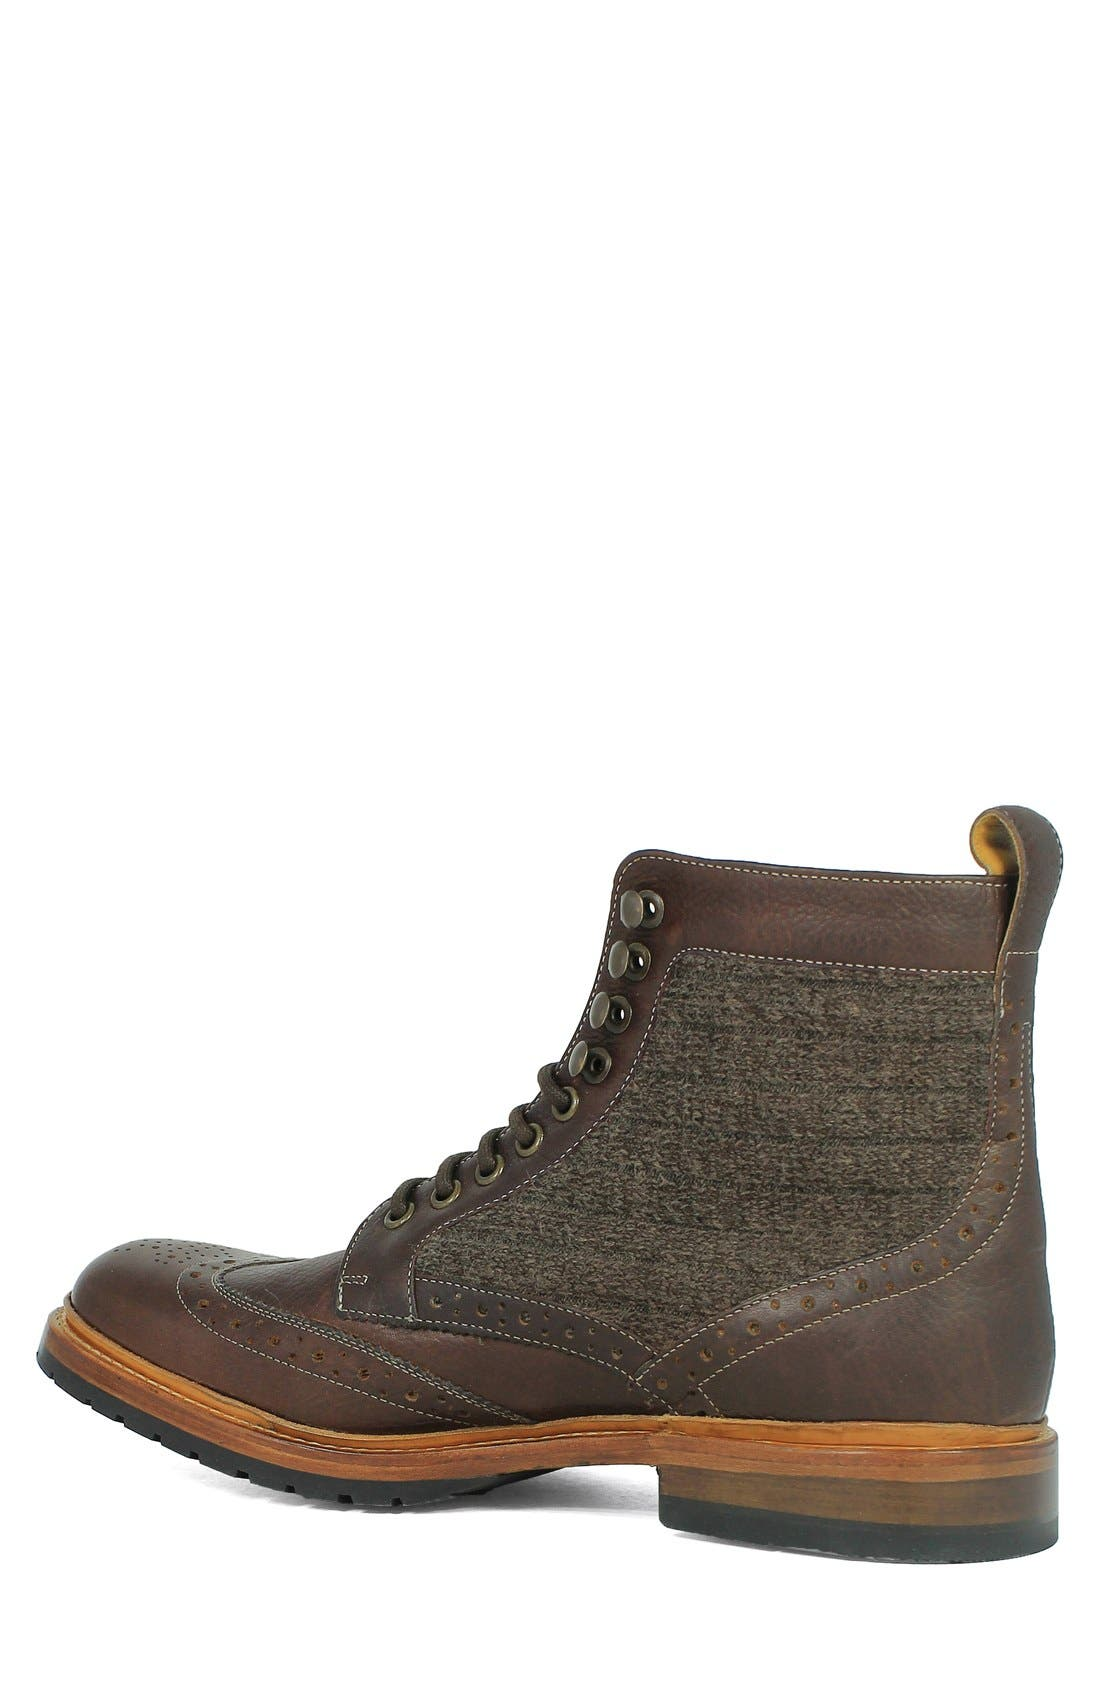 Madison II Wingtip Boot,                             Alternate thumbnail 2, color,                             Brown Multi